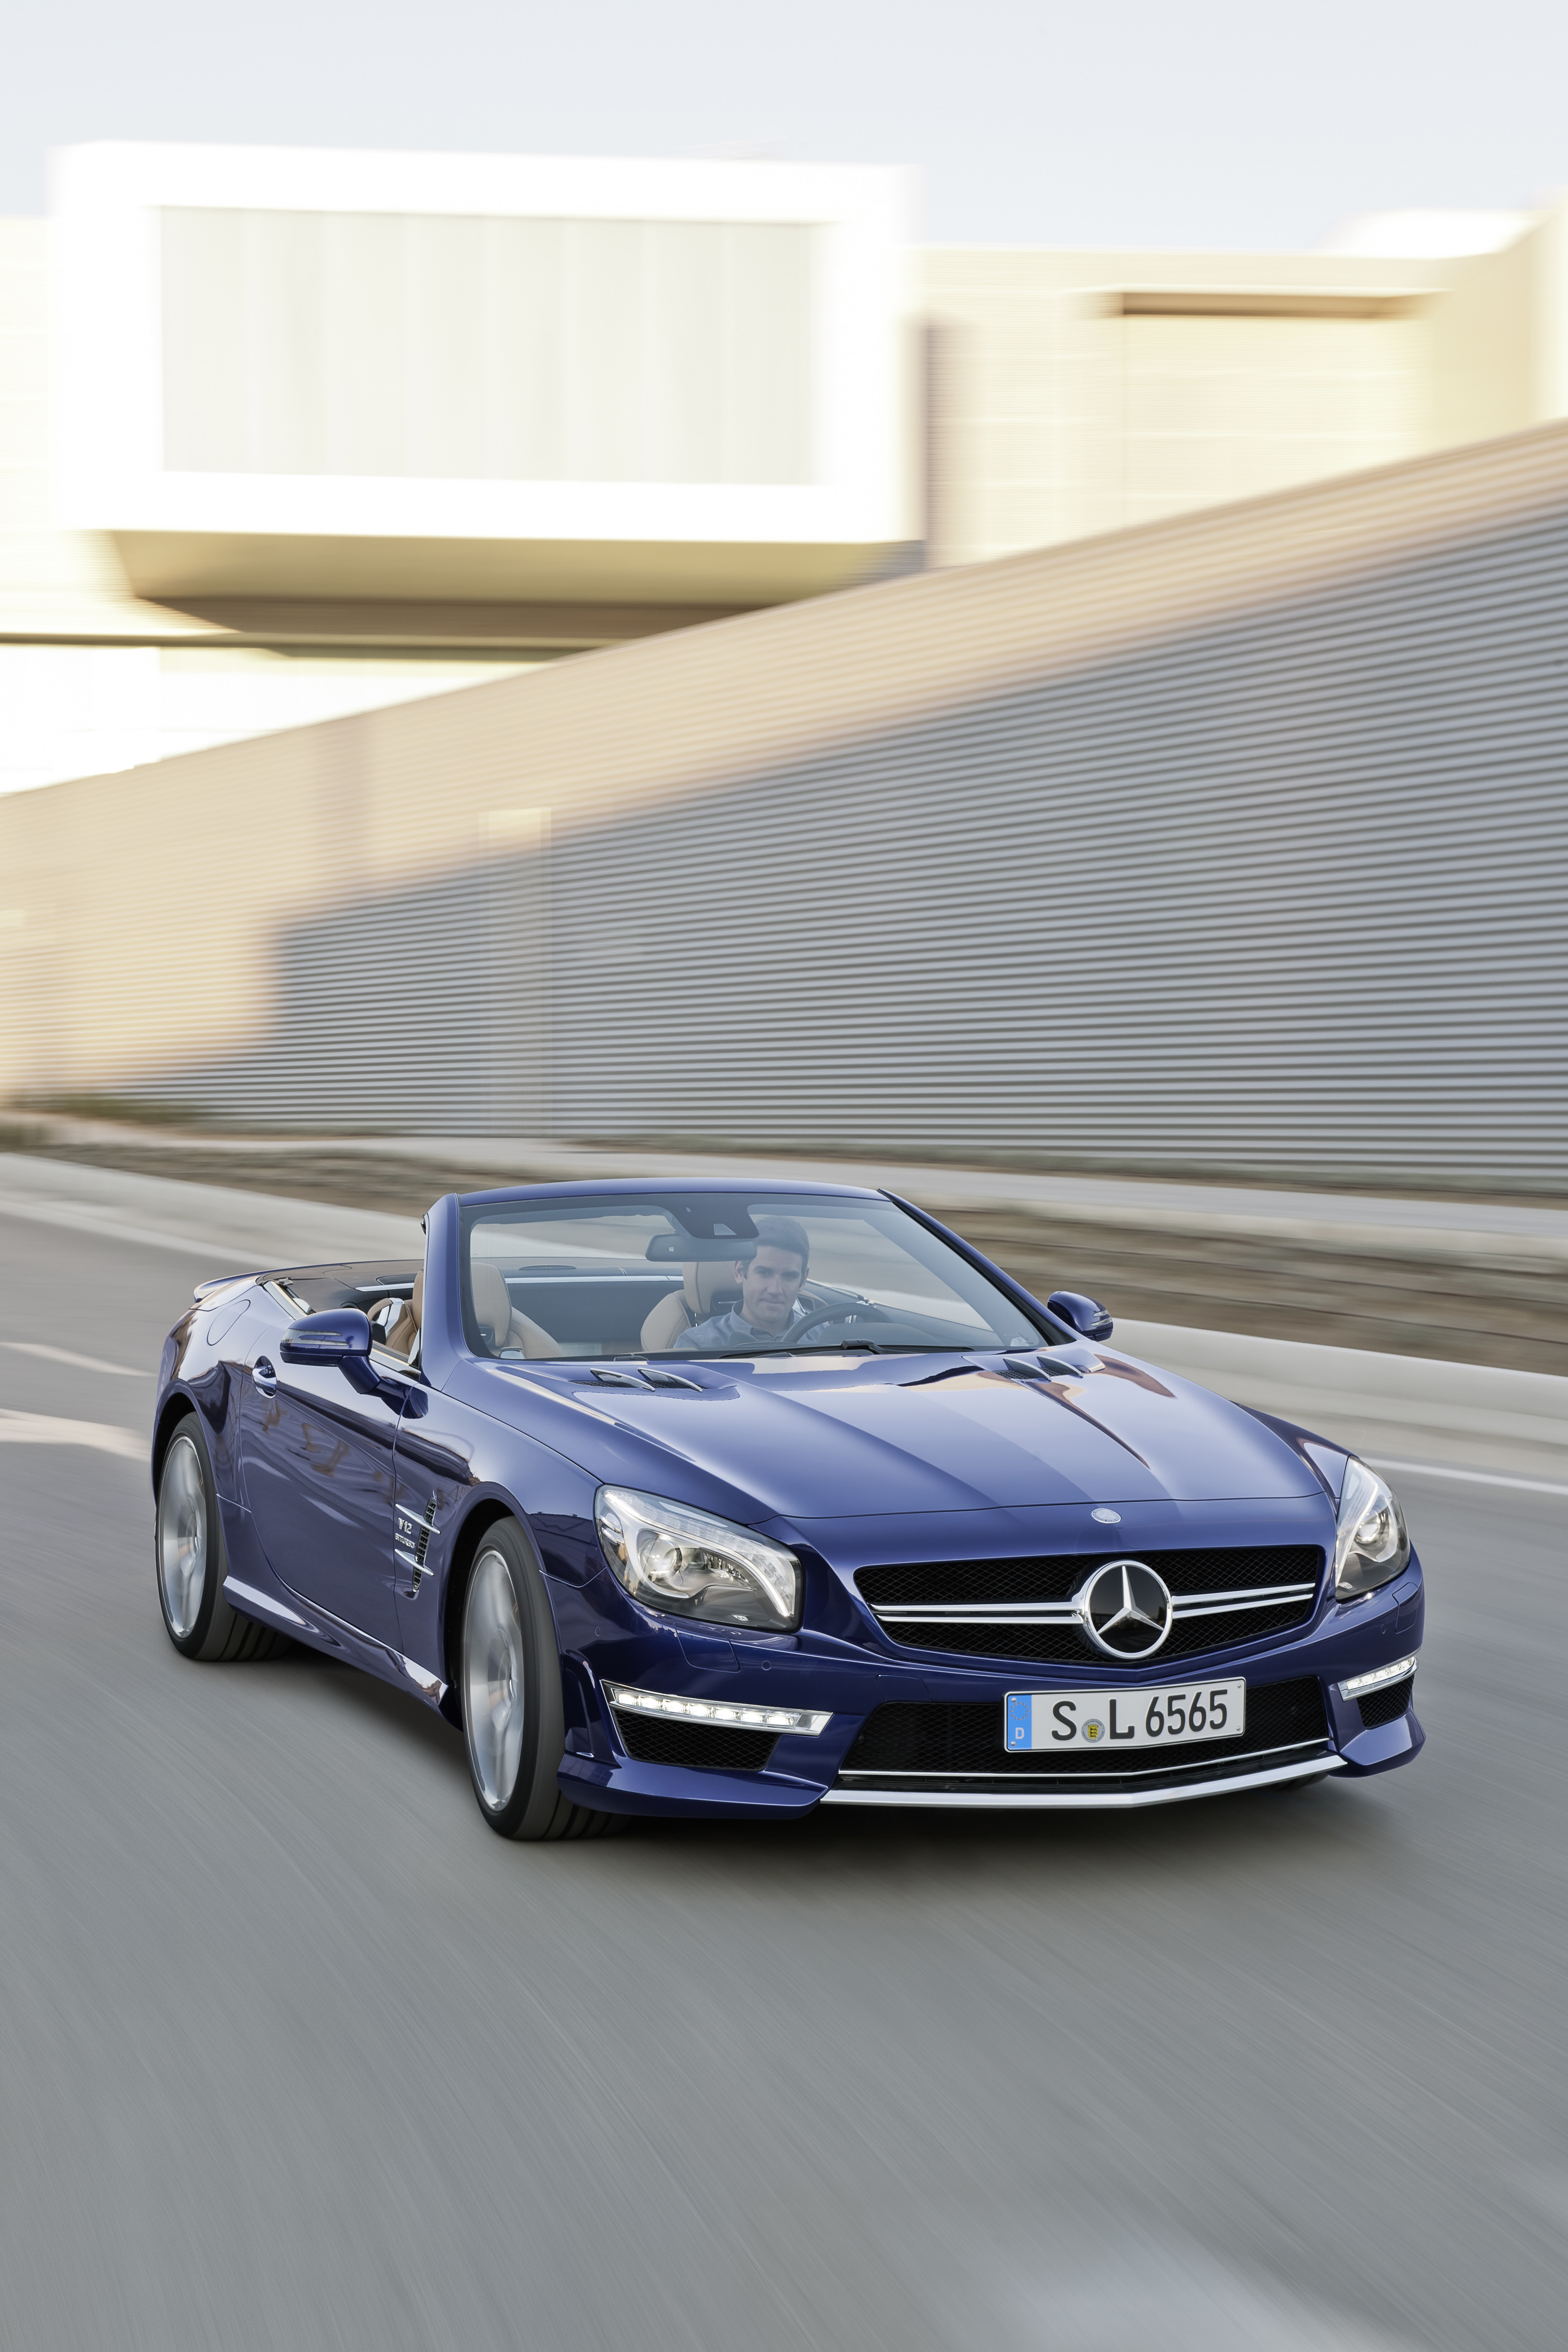 Mercedes benz sl 65 amg 650 hp and 1 000 nm image 94707 for Mercedes benz 650